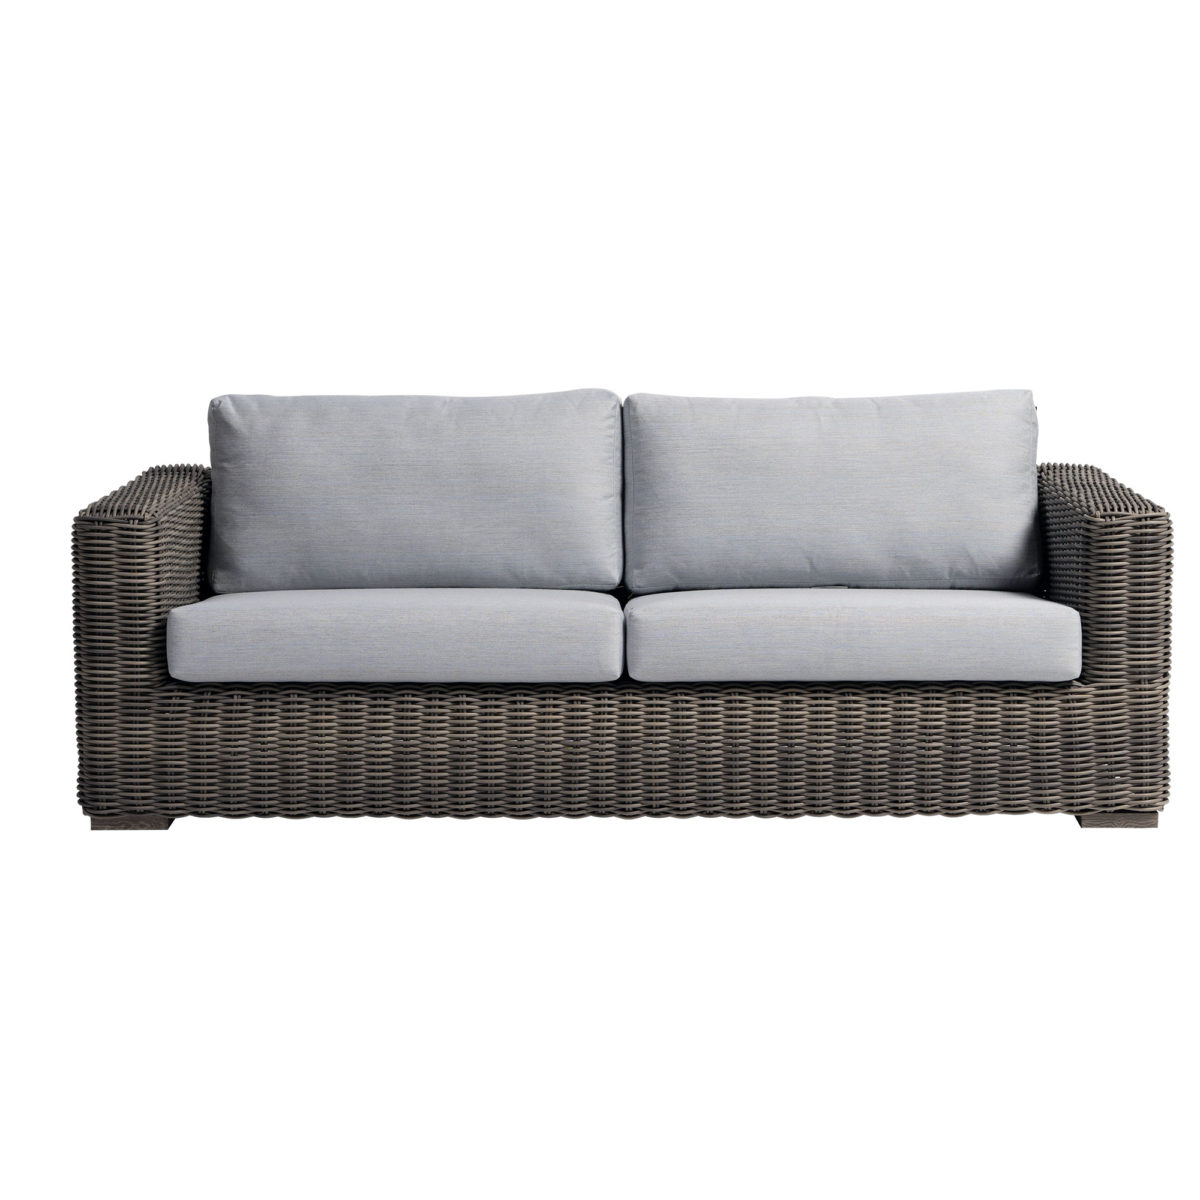 The Cubo sectional by Ratana showing light grey cushions.